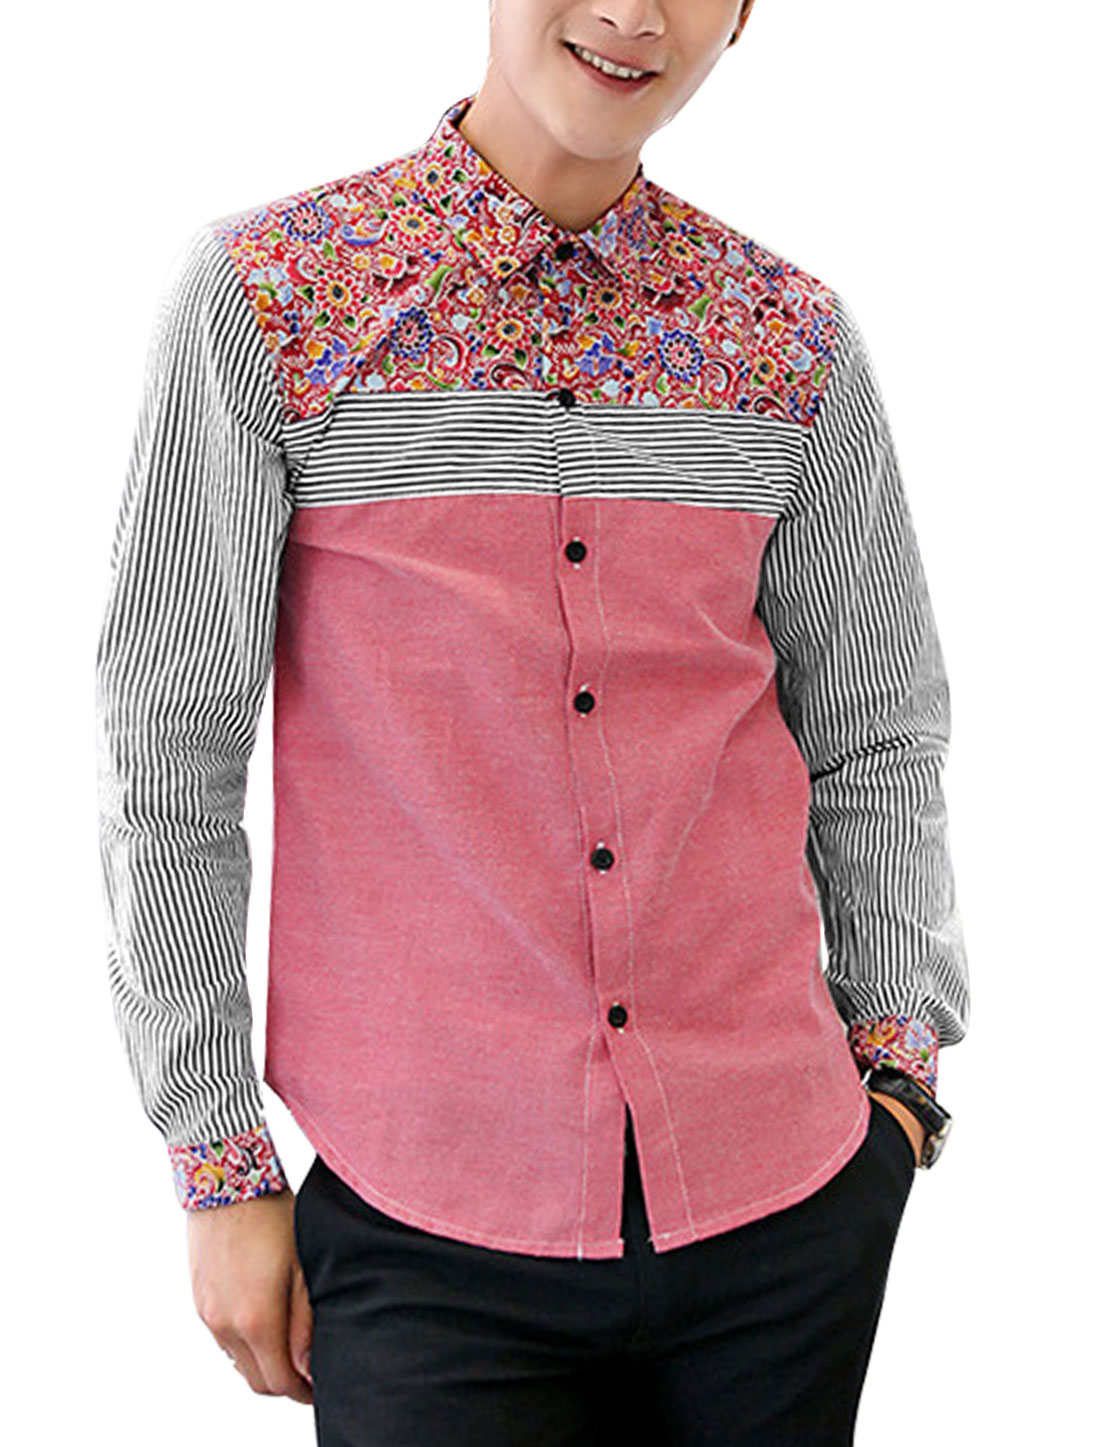 Men Point Collar Floral Stripes Pattern Leisure Shirt Pink M